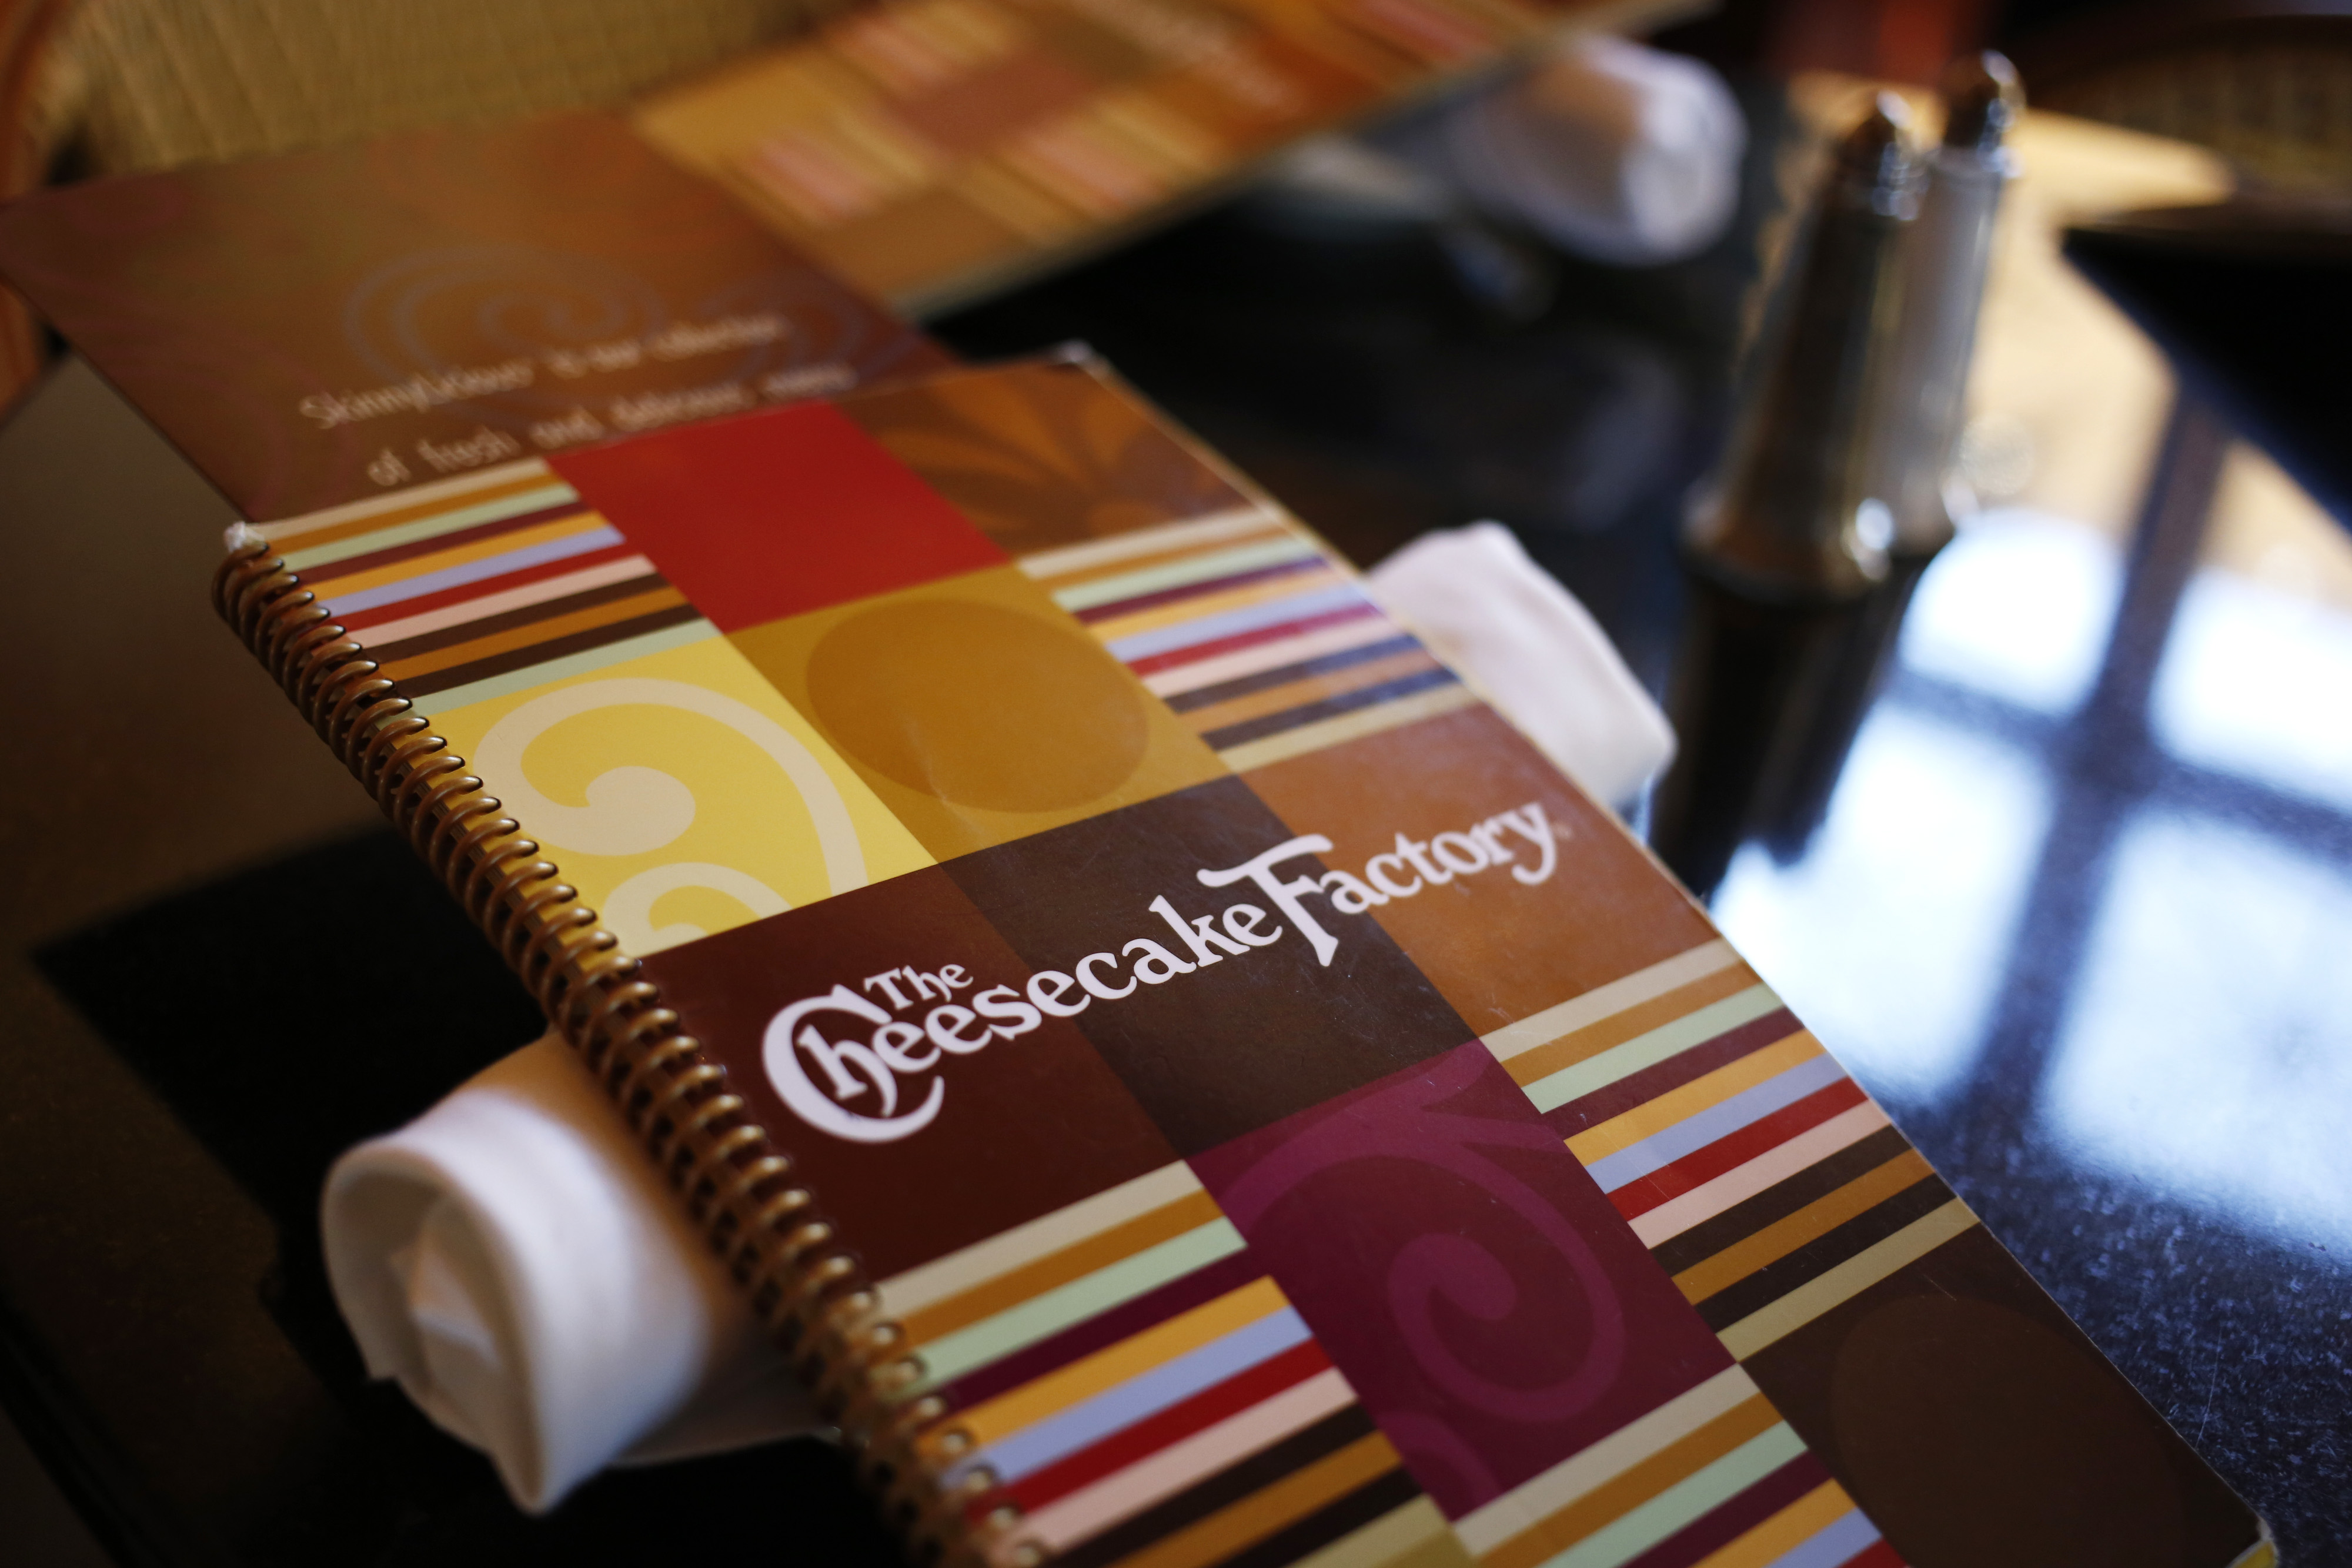 A menu sits on a table at a Cheesecake Factory restaurant in Louisville, Kentucky on Nov. 13, 2013.